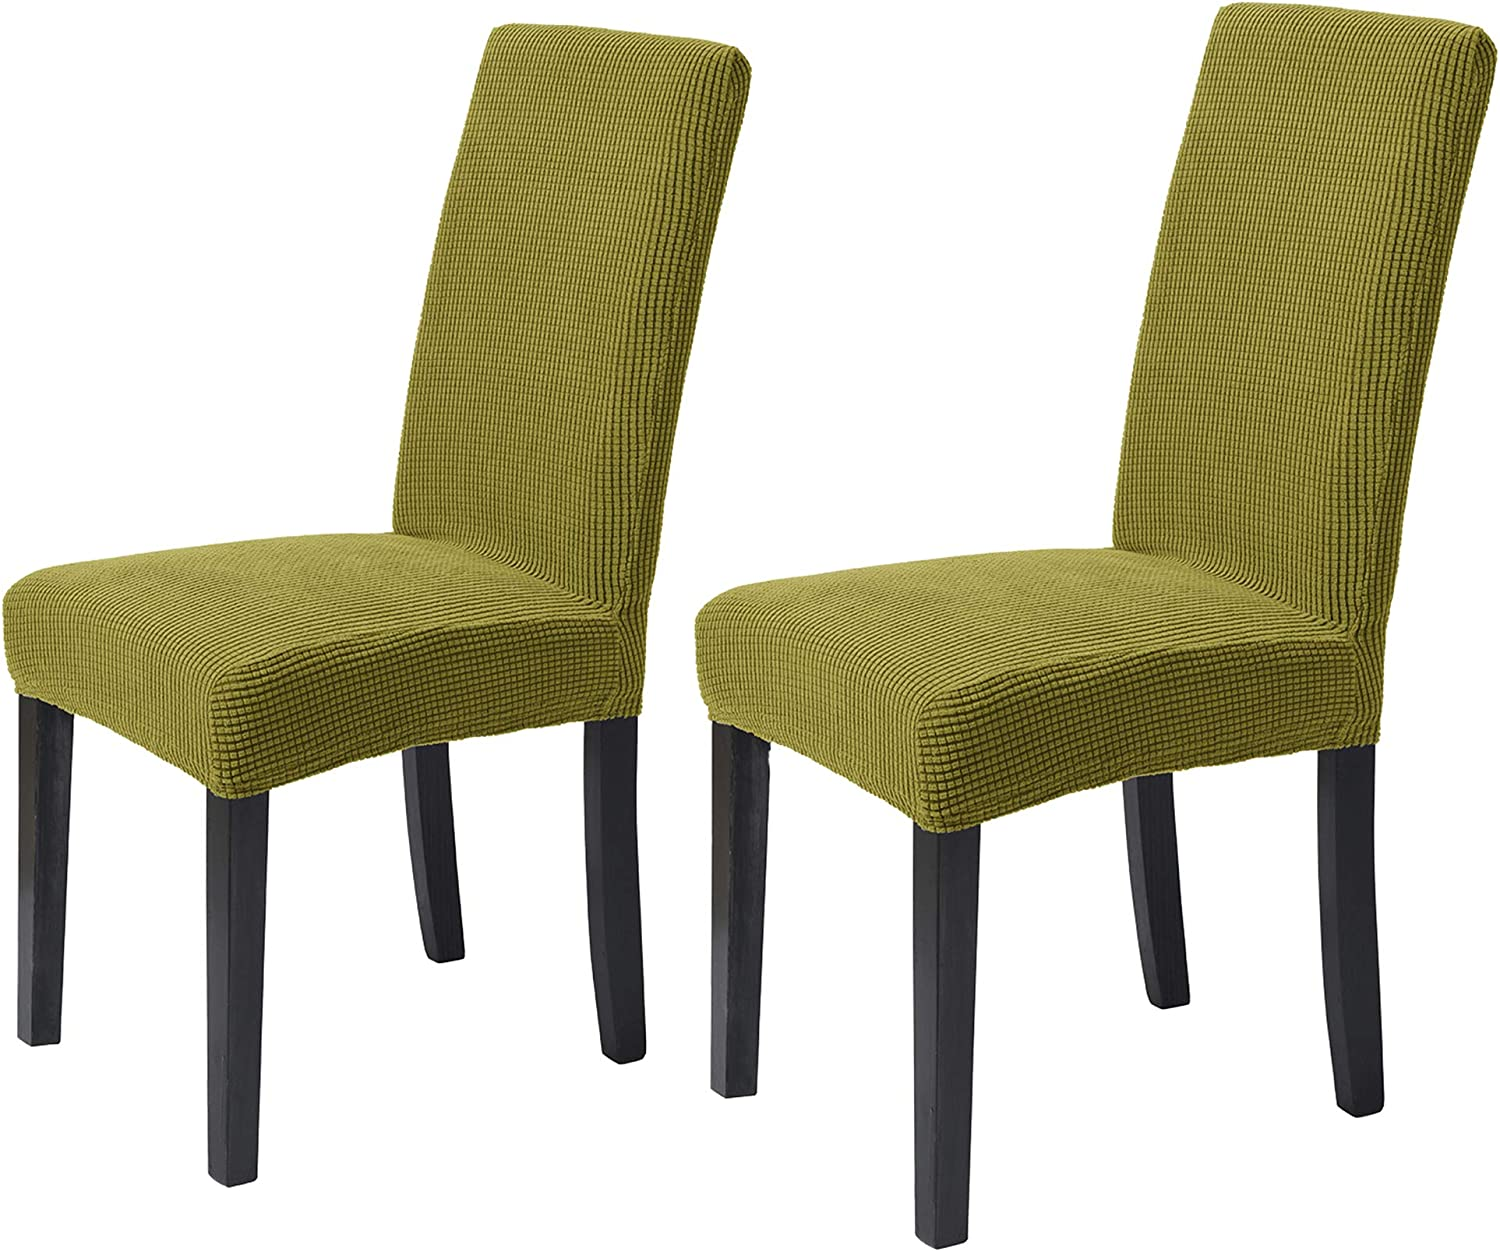 ManMengJi Dining Room Chair Covers, Washable Parsons Chair Slipcover Jacquard Kitchen Chair Slipcovers Stretch Chair Covers for Dining Room, Kitchen Set of 2 (Forest Green)